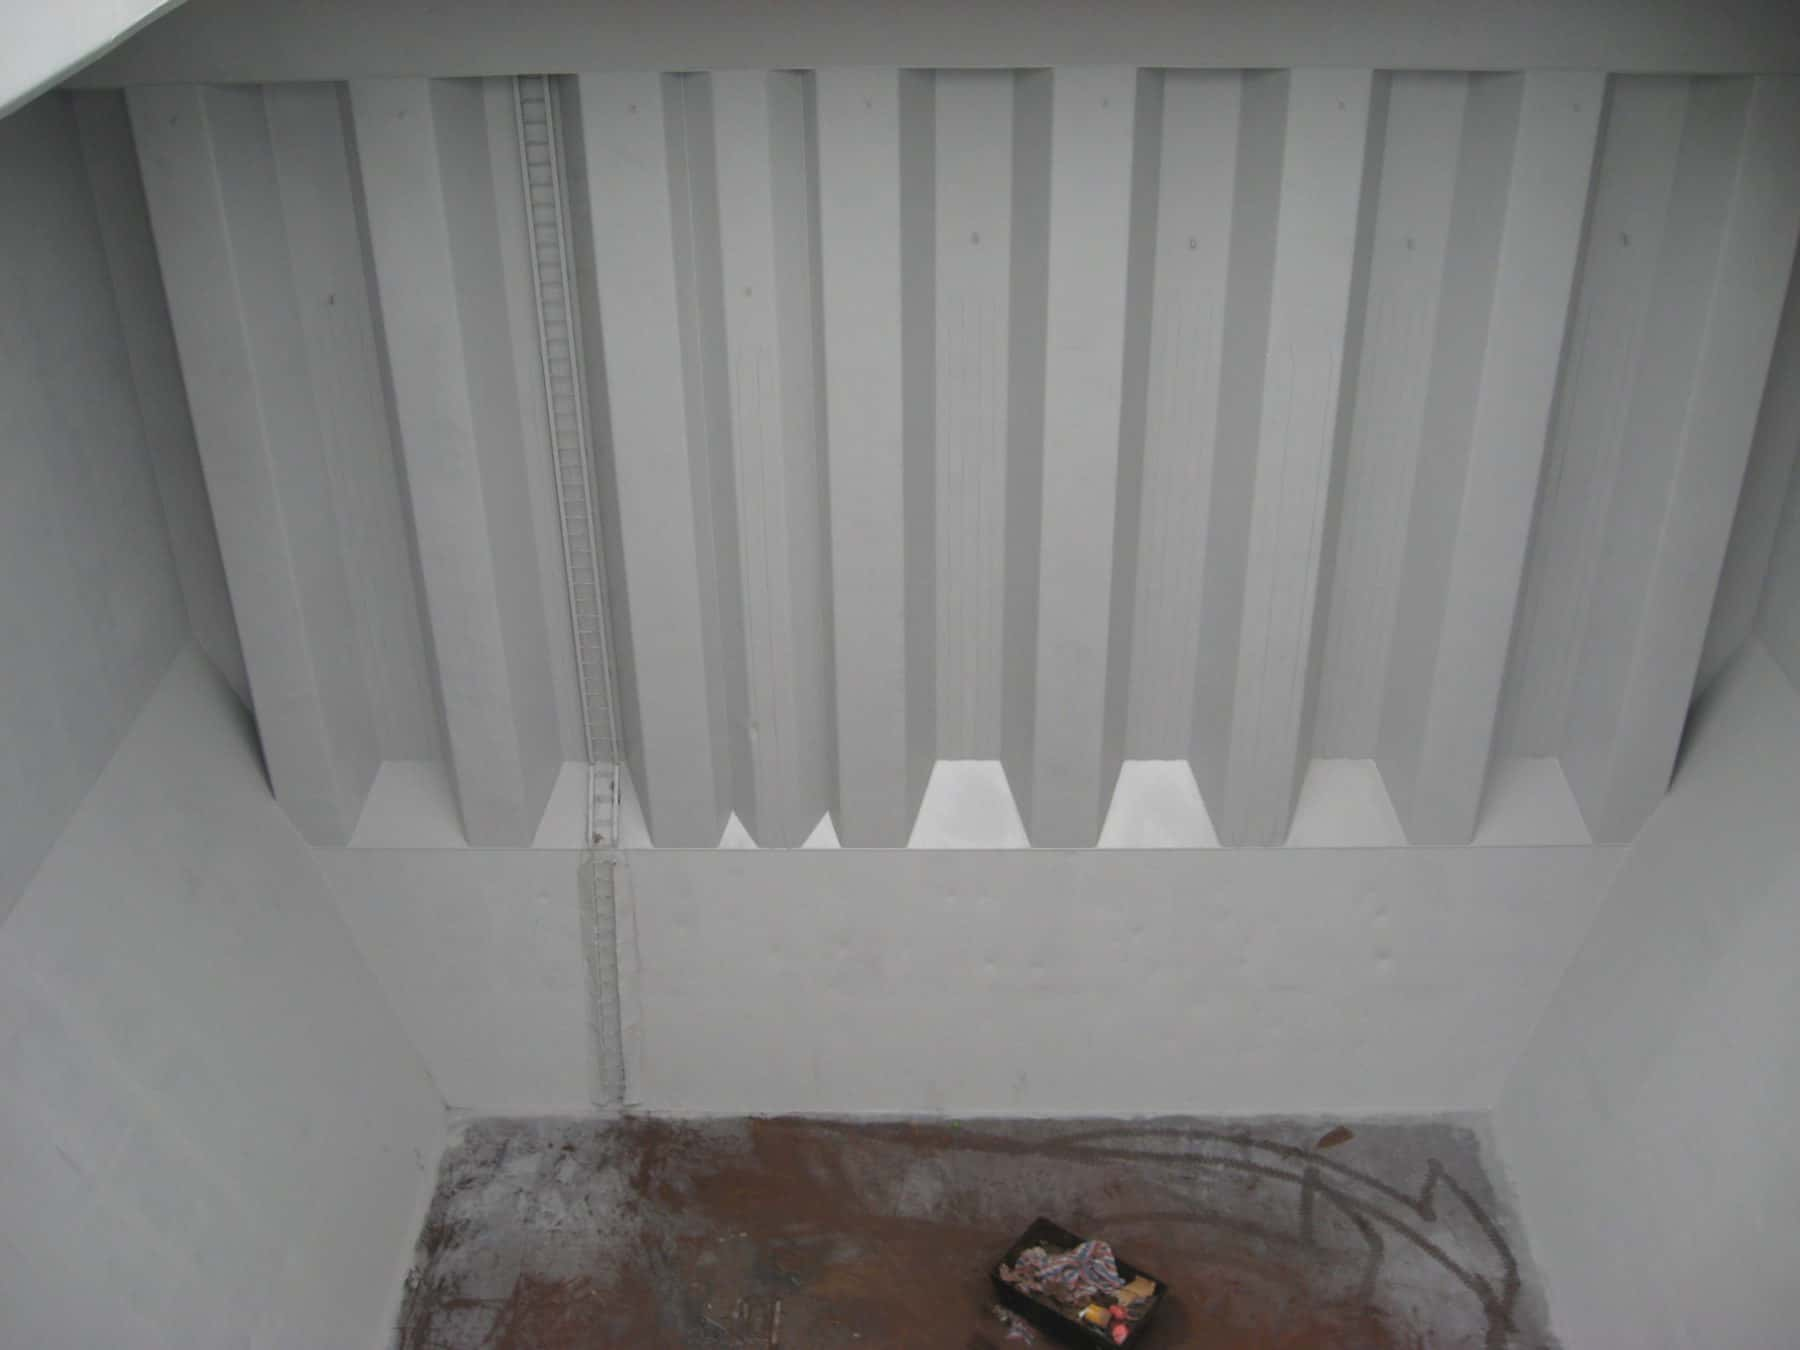 large cargo hold coated with grey paint